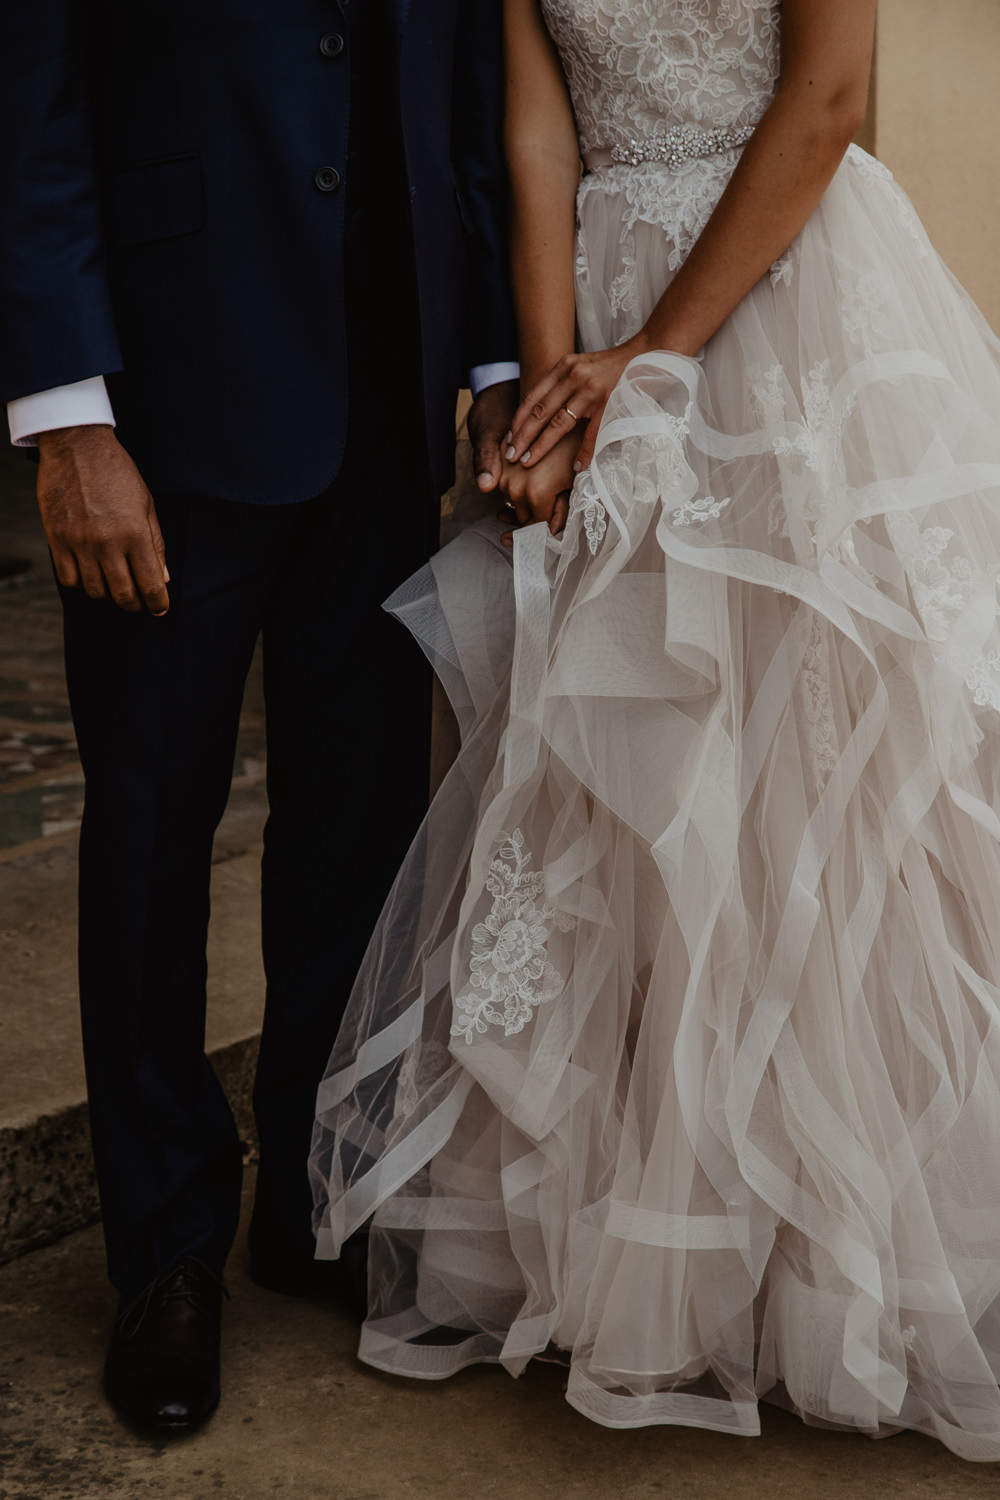 Osborne House Isle of Wight Natural Classic Bride Blush Pastel Bouquets Blush Stella York Dress Groom Outdoor Ceremony | Timeless Royal Inspired Seaside Wedding Holly Cade Photography